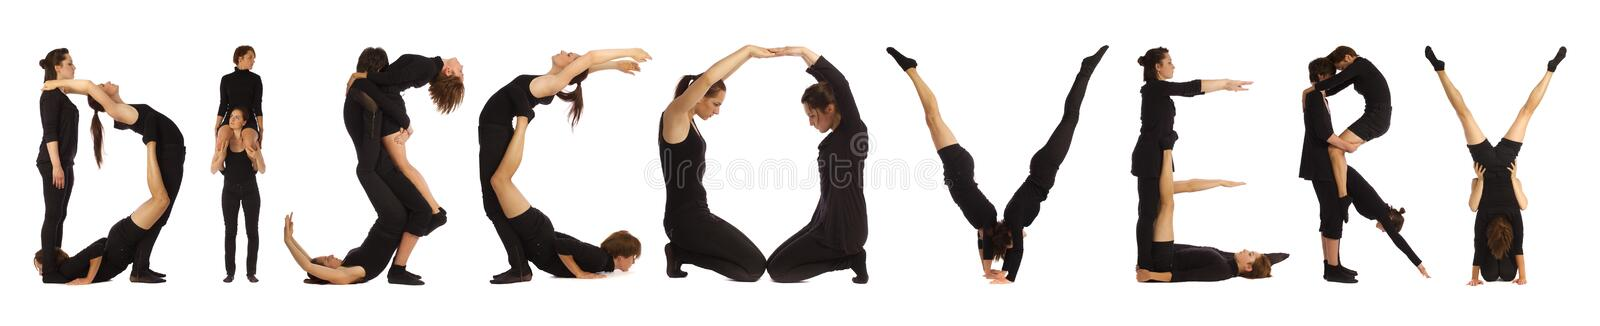 Black dressed people forming word DISCOVERY stock photo